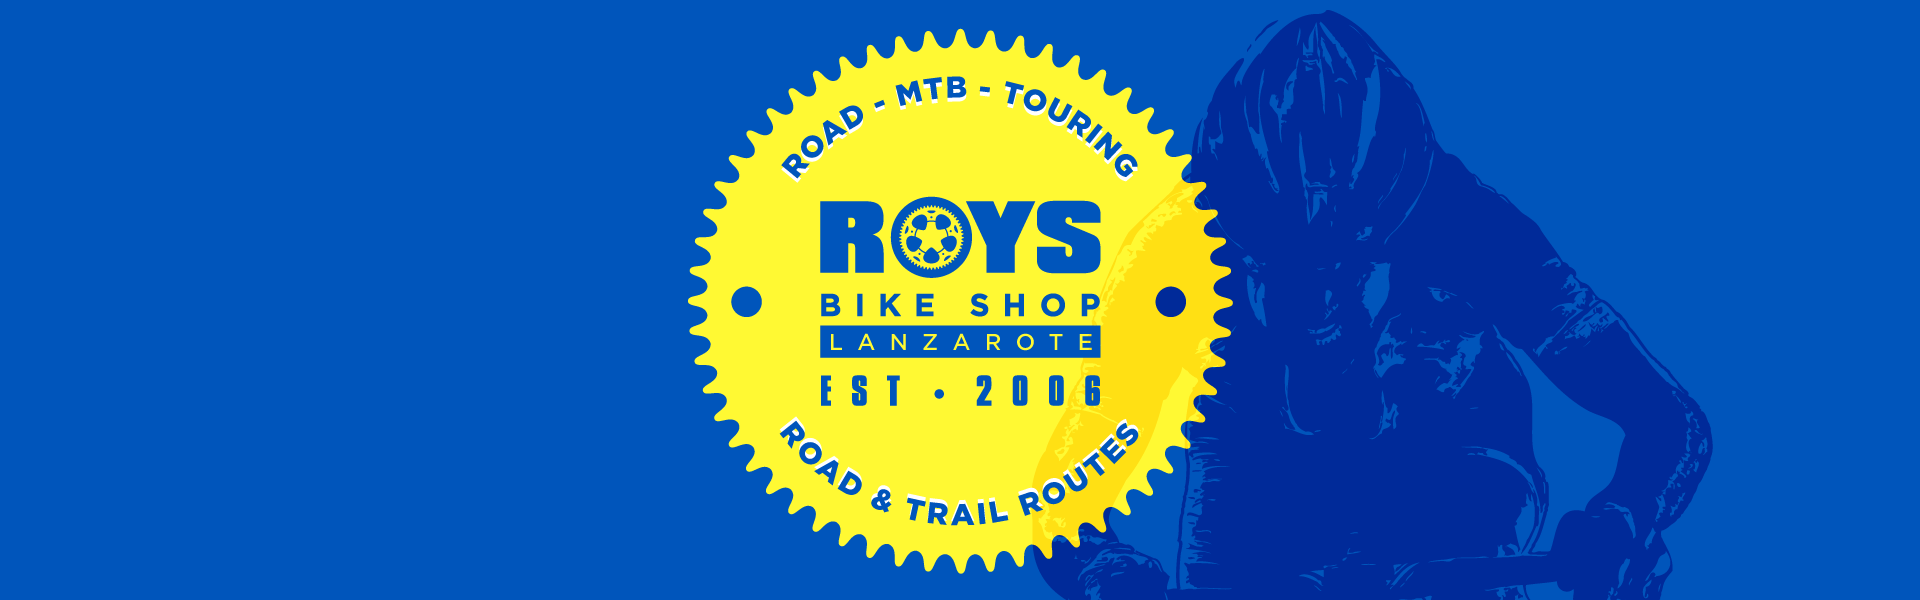 Roys-Bike-Shop-Lanzarote-Playa-Blanca